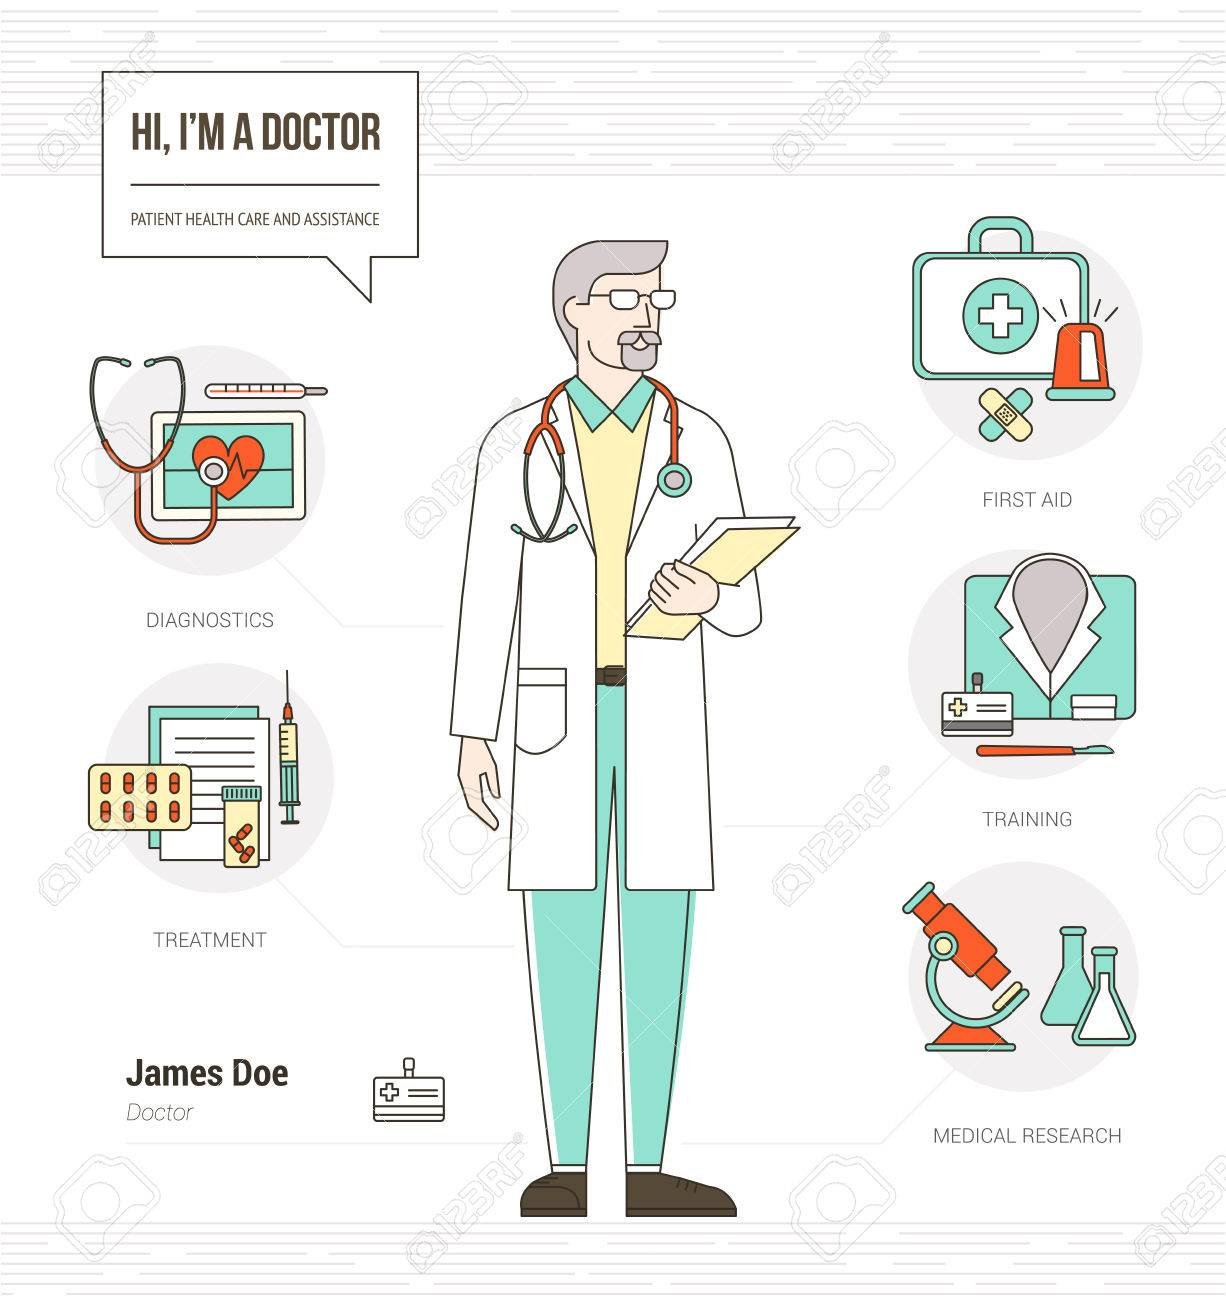 professional doctor infographic resume skills with tools medical